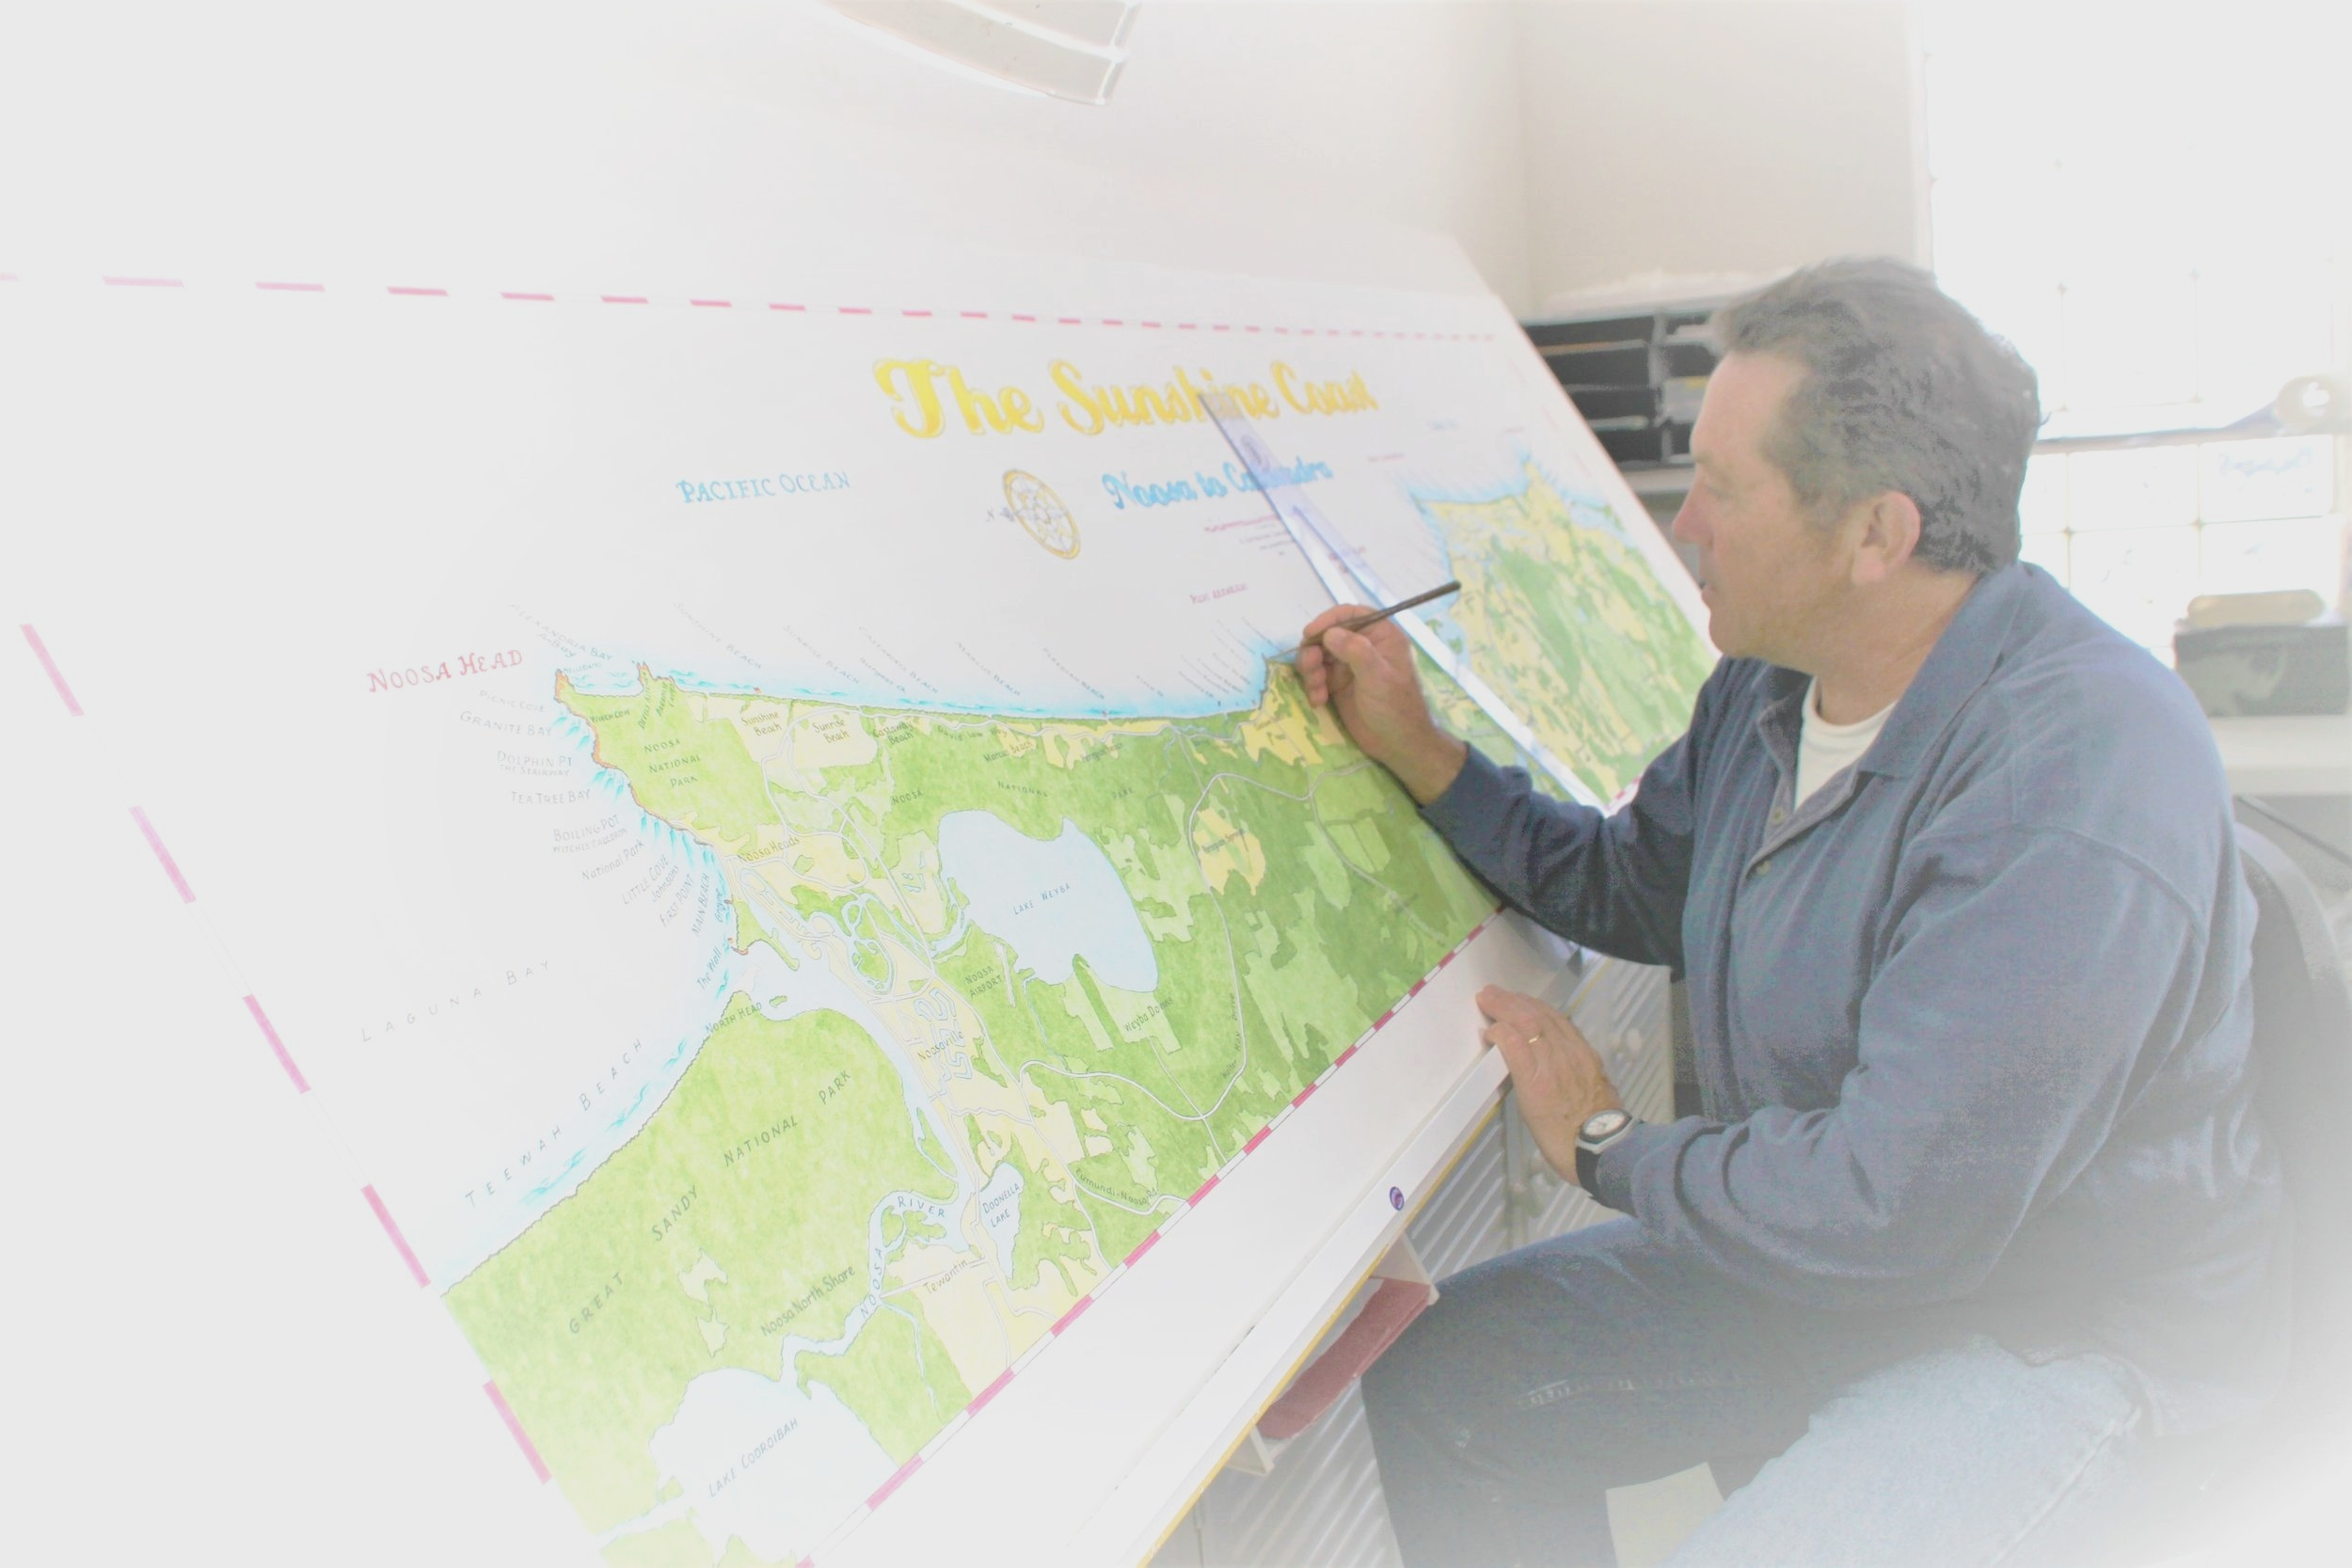 Handmade Surf Maps by Guy Hastings - Over 100 hours per map to create the most detailed surf charts from around the world.